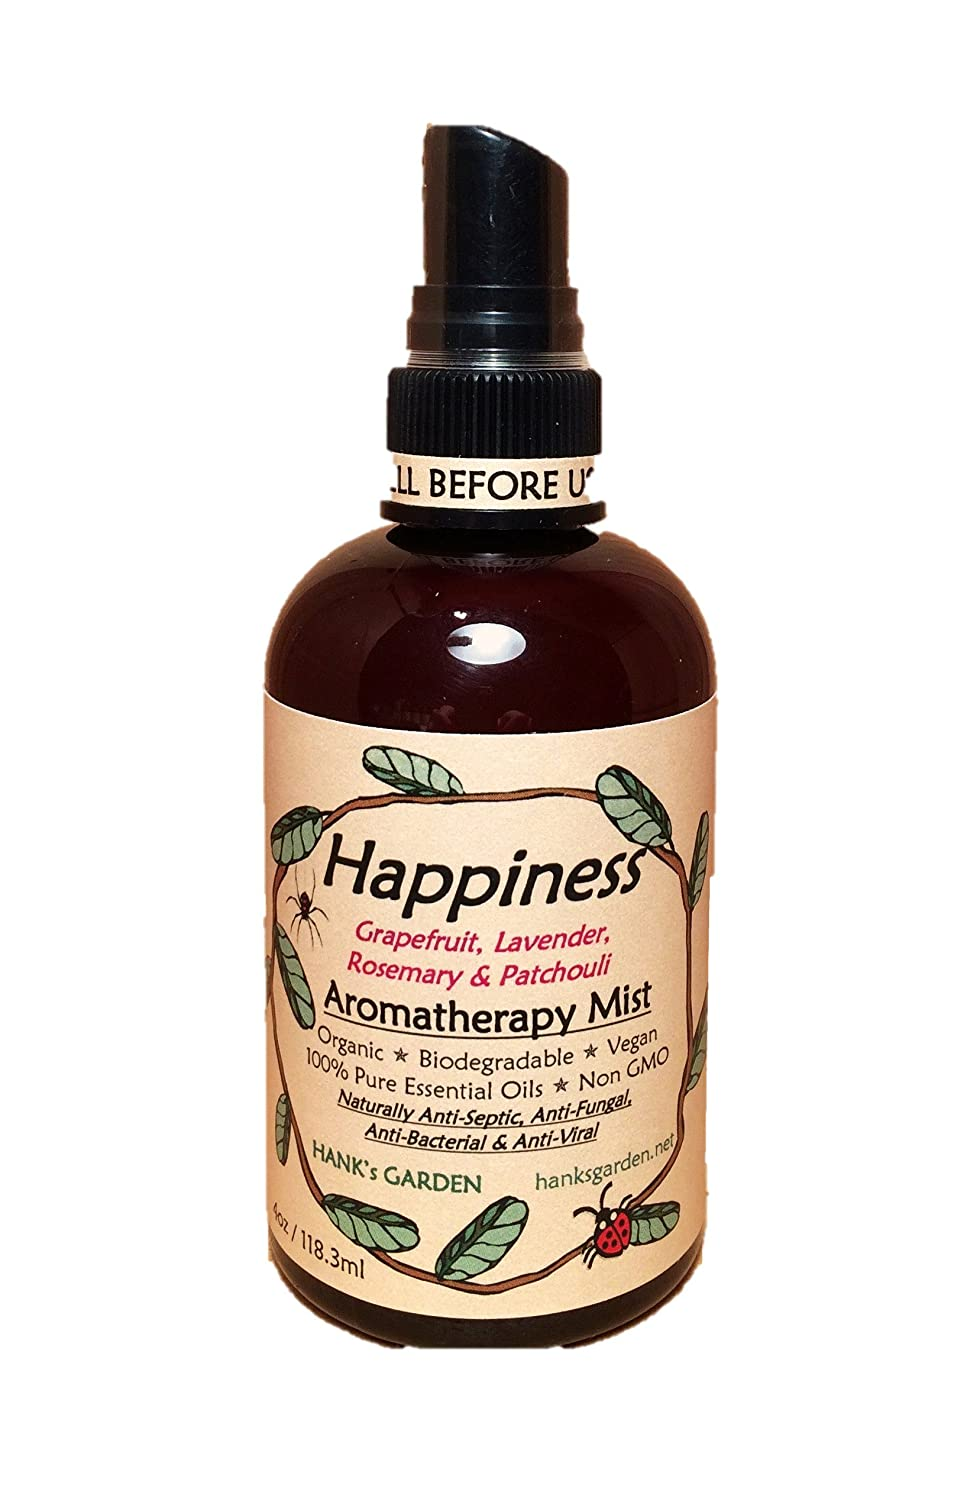 HAPPINESS Aromatherapy Body and Room Mist Spray - Lavender, Grapefruit, Rosemary, Patchouli - 100% Pure Essential Oils, All Natural, Vegan, Organic, Biodegradable, Non GMO (8 oz)